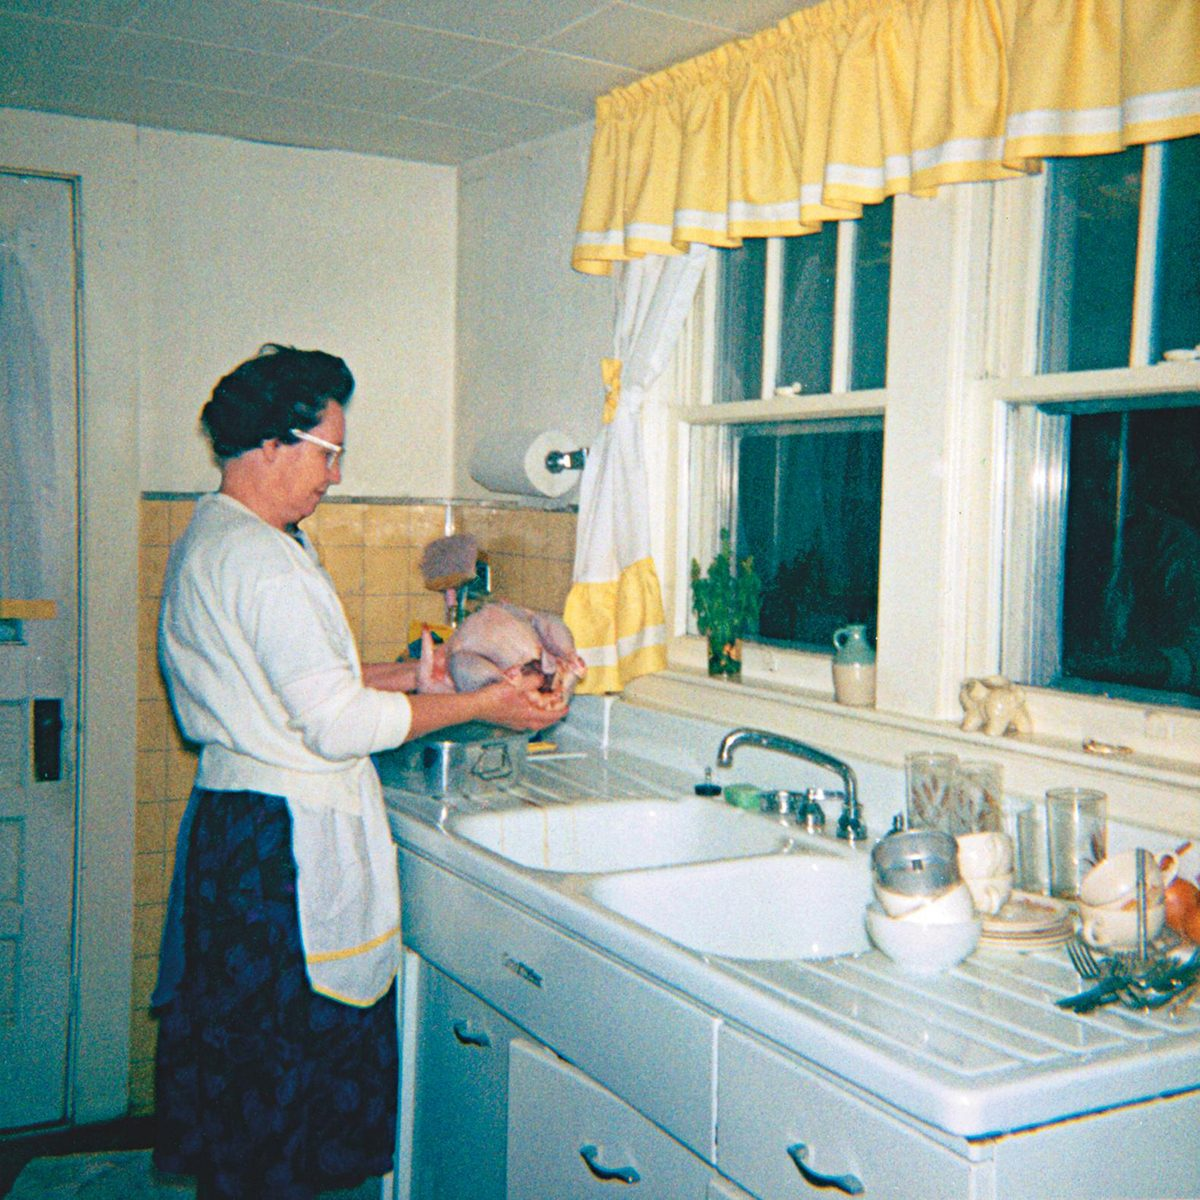 older woman holding raw turkey above sink 1960s